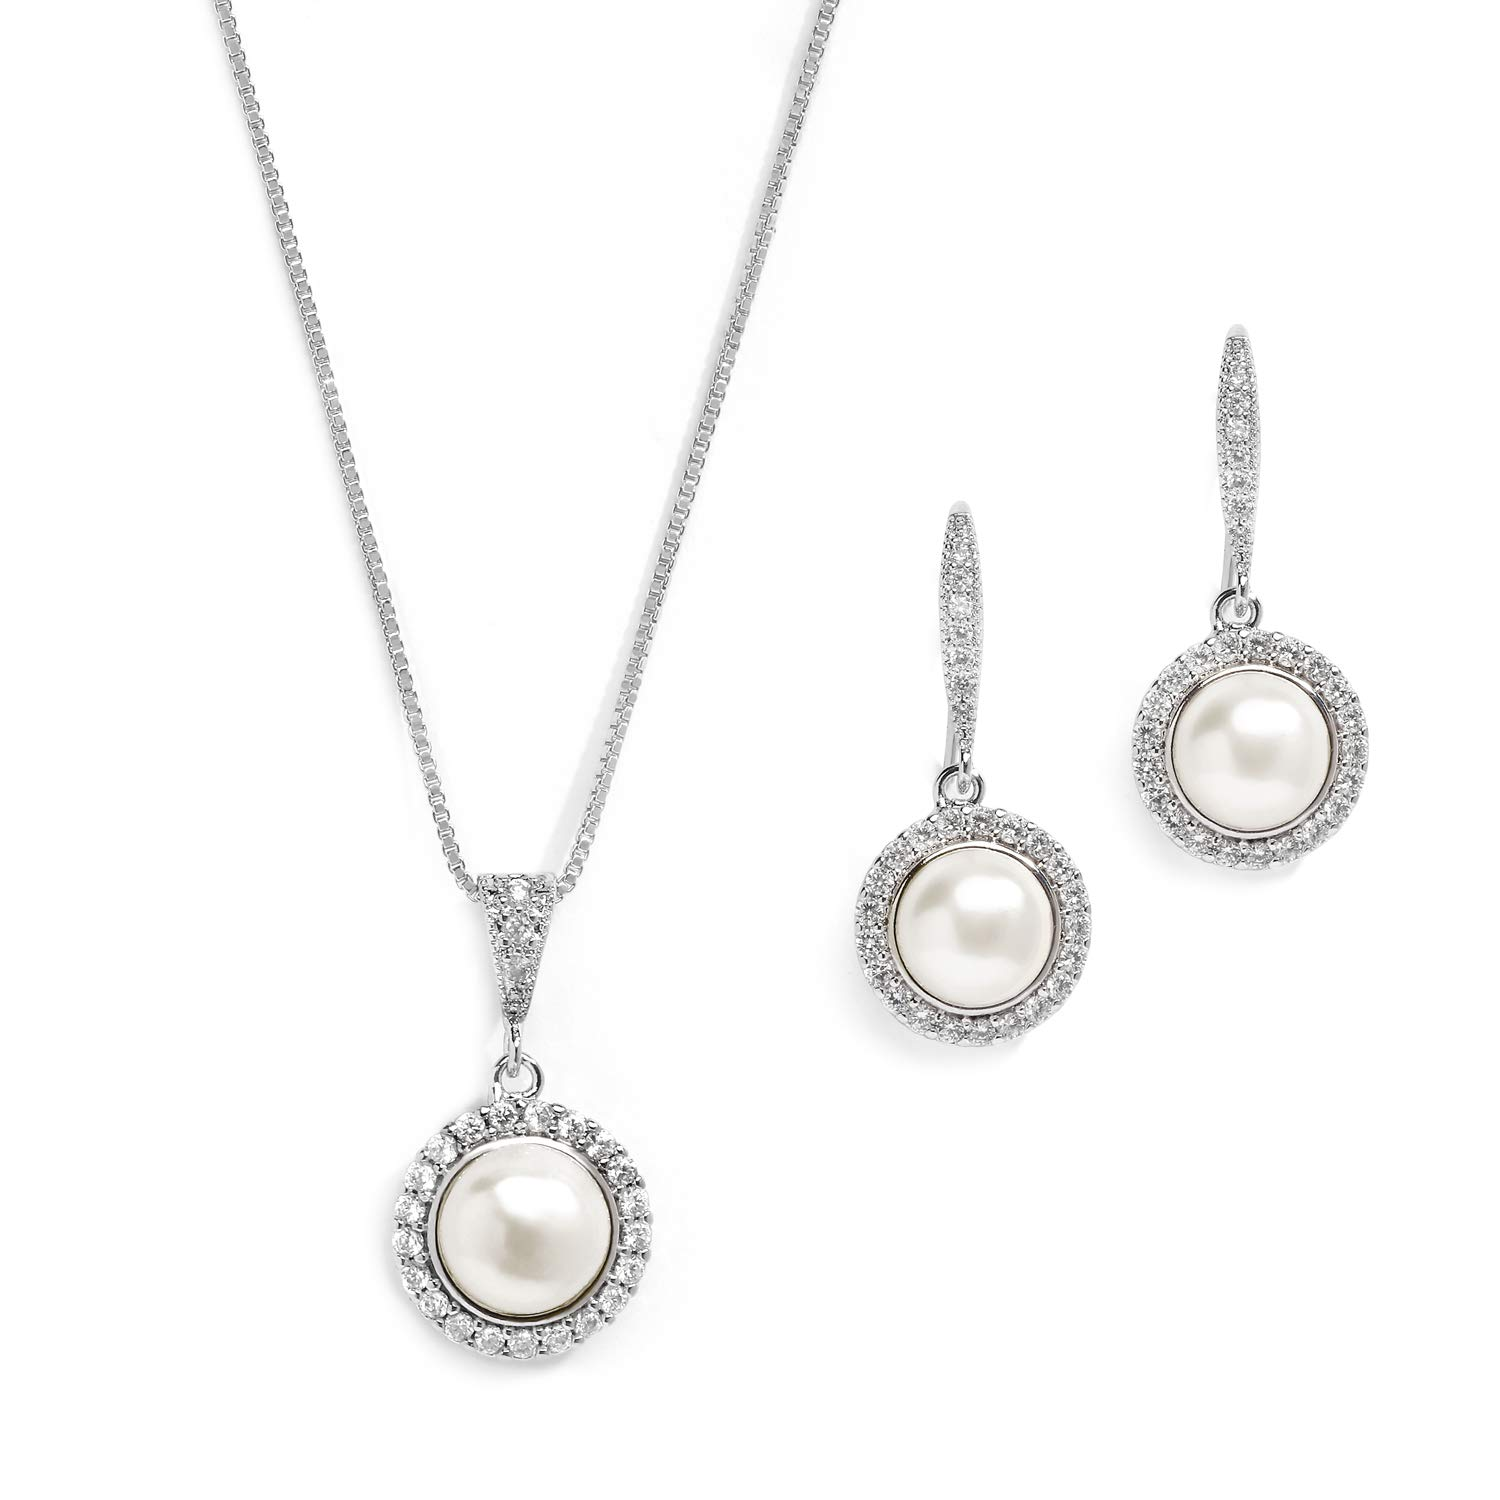 29a905b6f Amazon.com: Mariell CZ and Freshwater Pearl Wedding Necklace and Earrings  Silver Jewelry Set for Bridesmaids & Brides: Jewelry